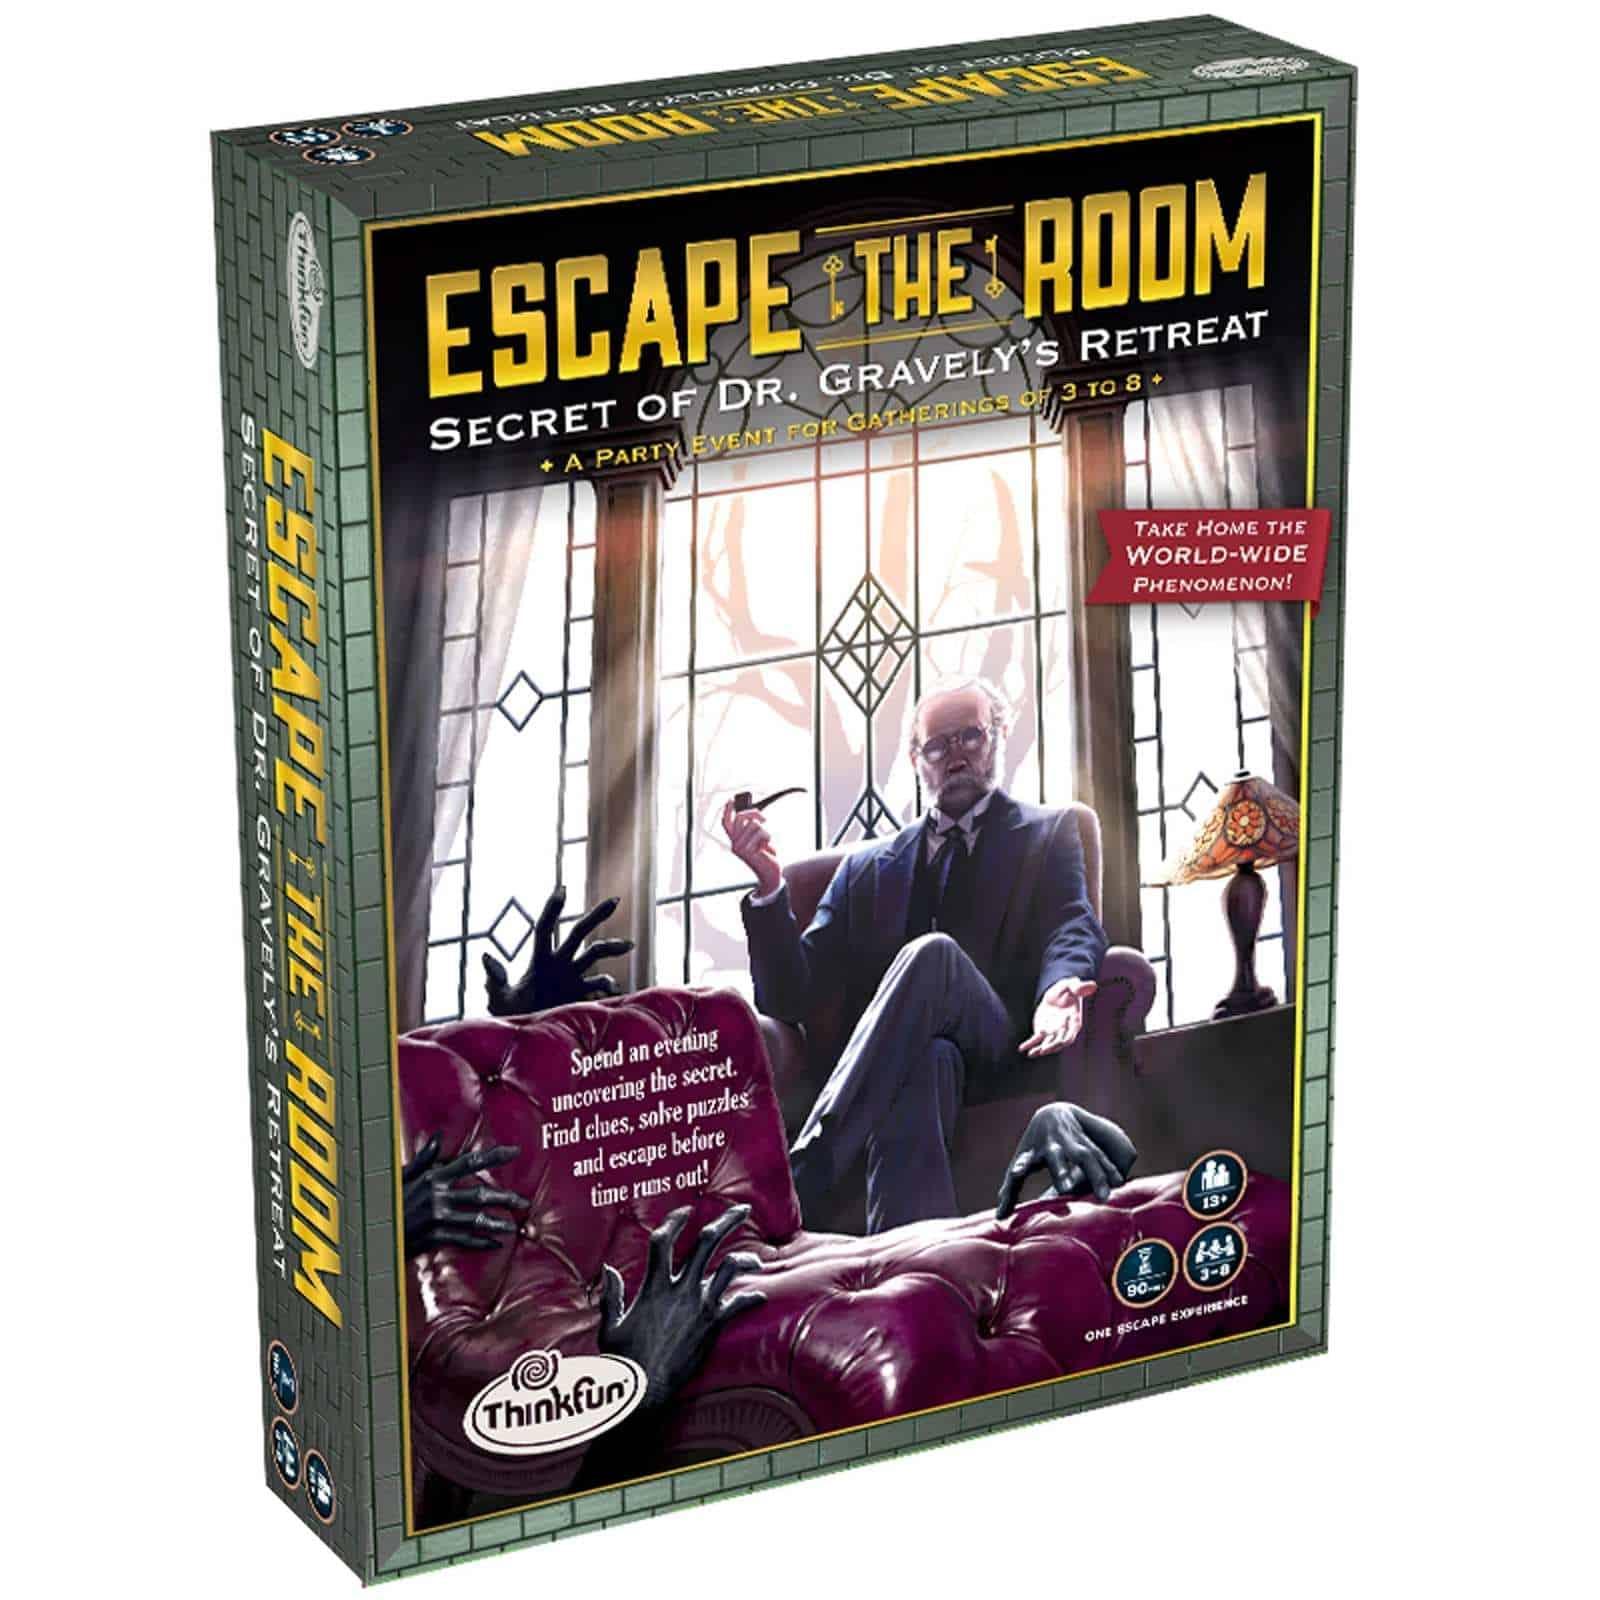 Buy Fun Escape Rooms Board Games for Online Puzzle Solvers